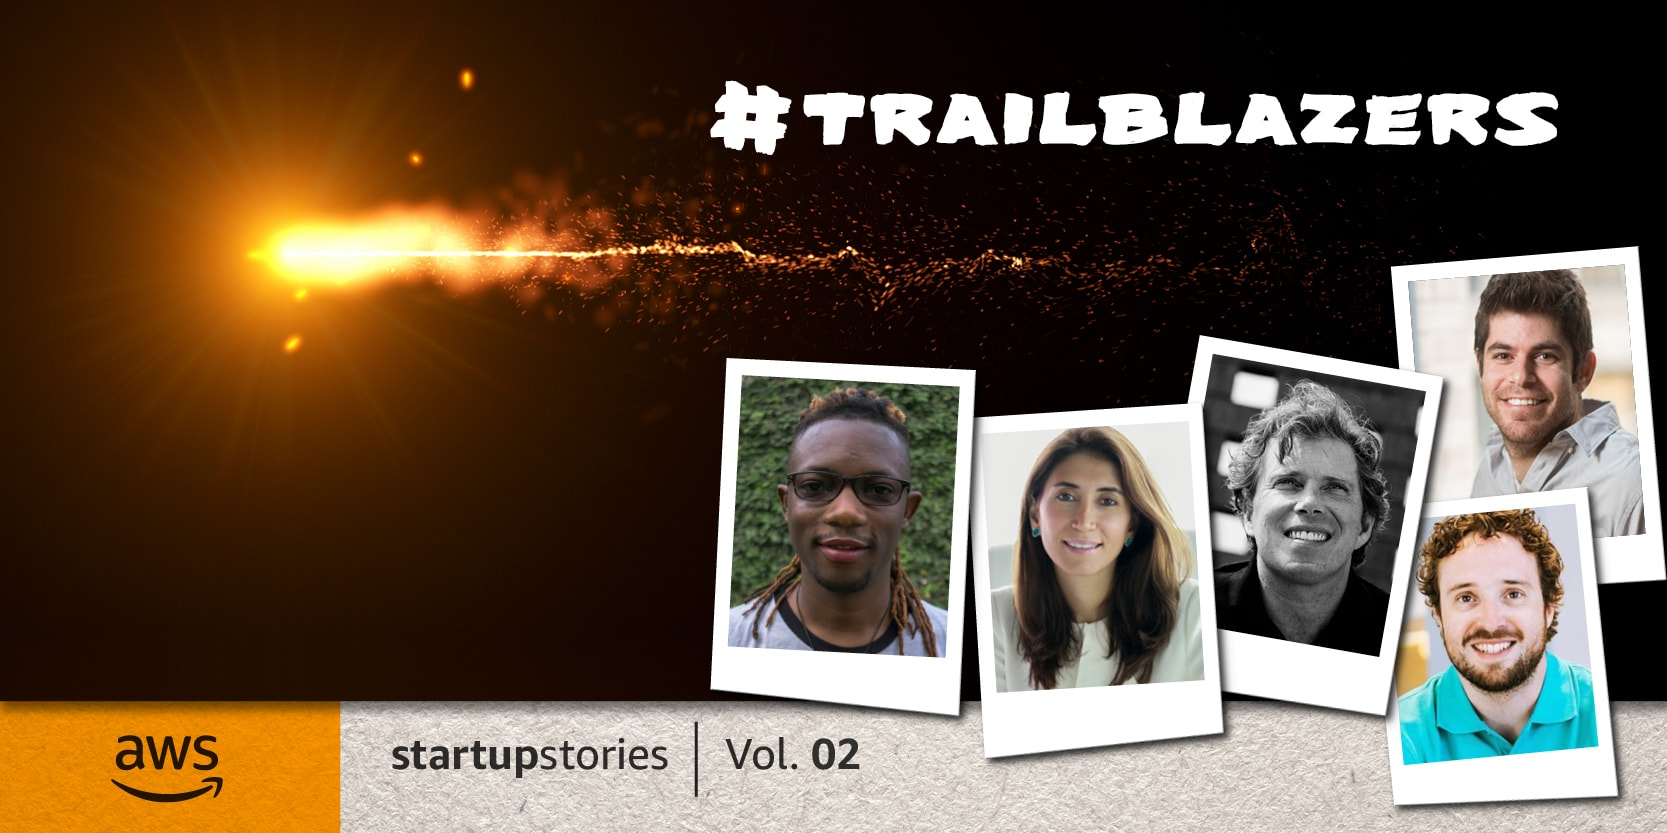 Startup_Stories_Vol2_Trailblazers_Banner